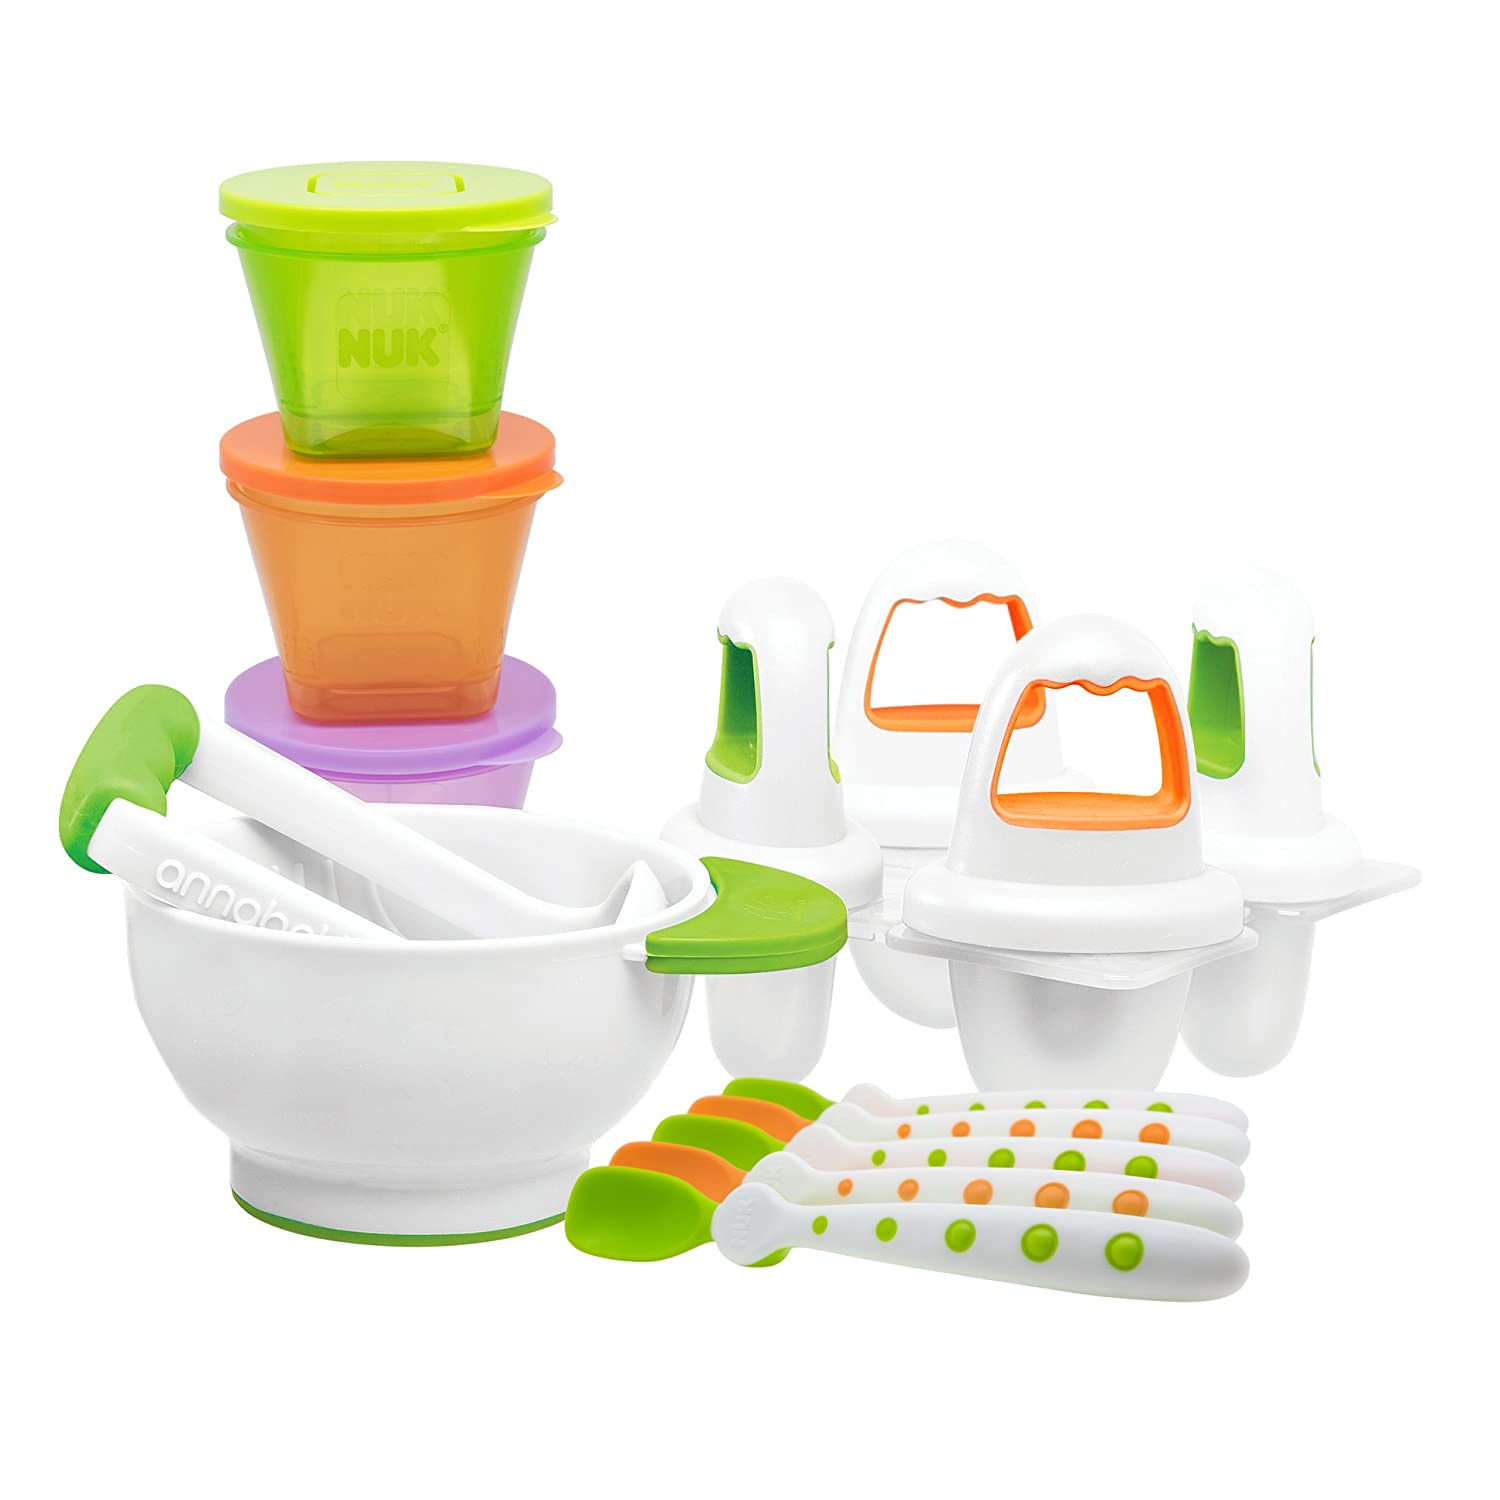 Annabel Karmel by NUK Baby Weaning Starter Set Mapa Spontex (UK) Ltd 10759143